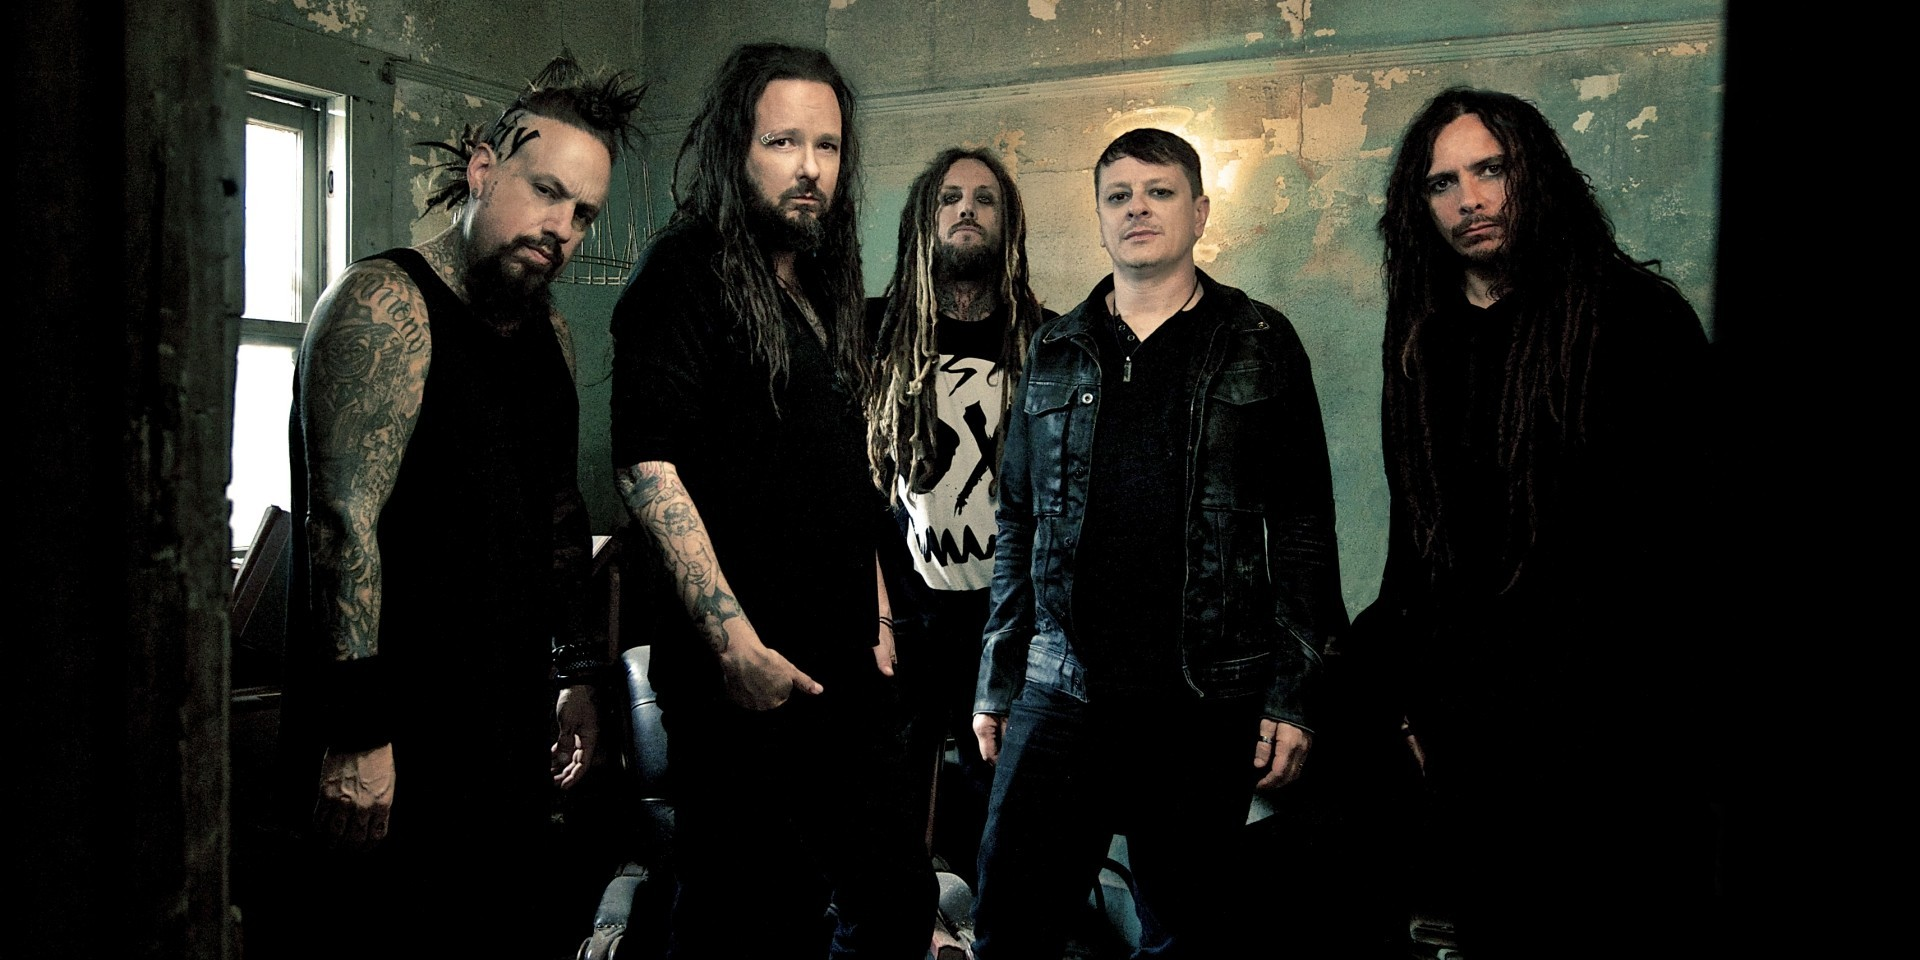 KoRn launches its own brand of coffee, KoRn Koffee